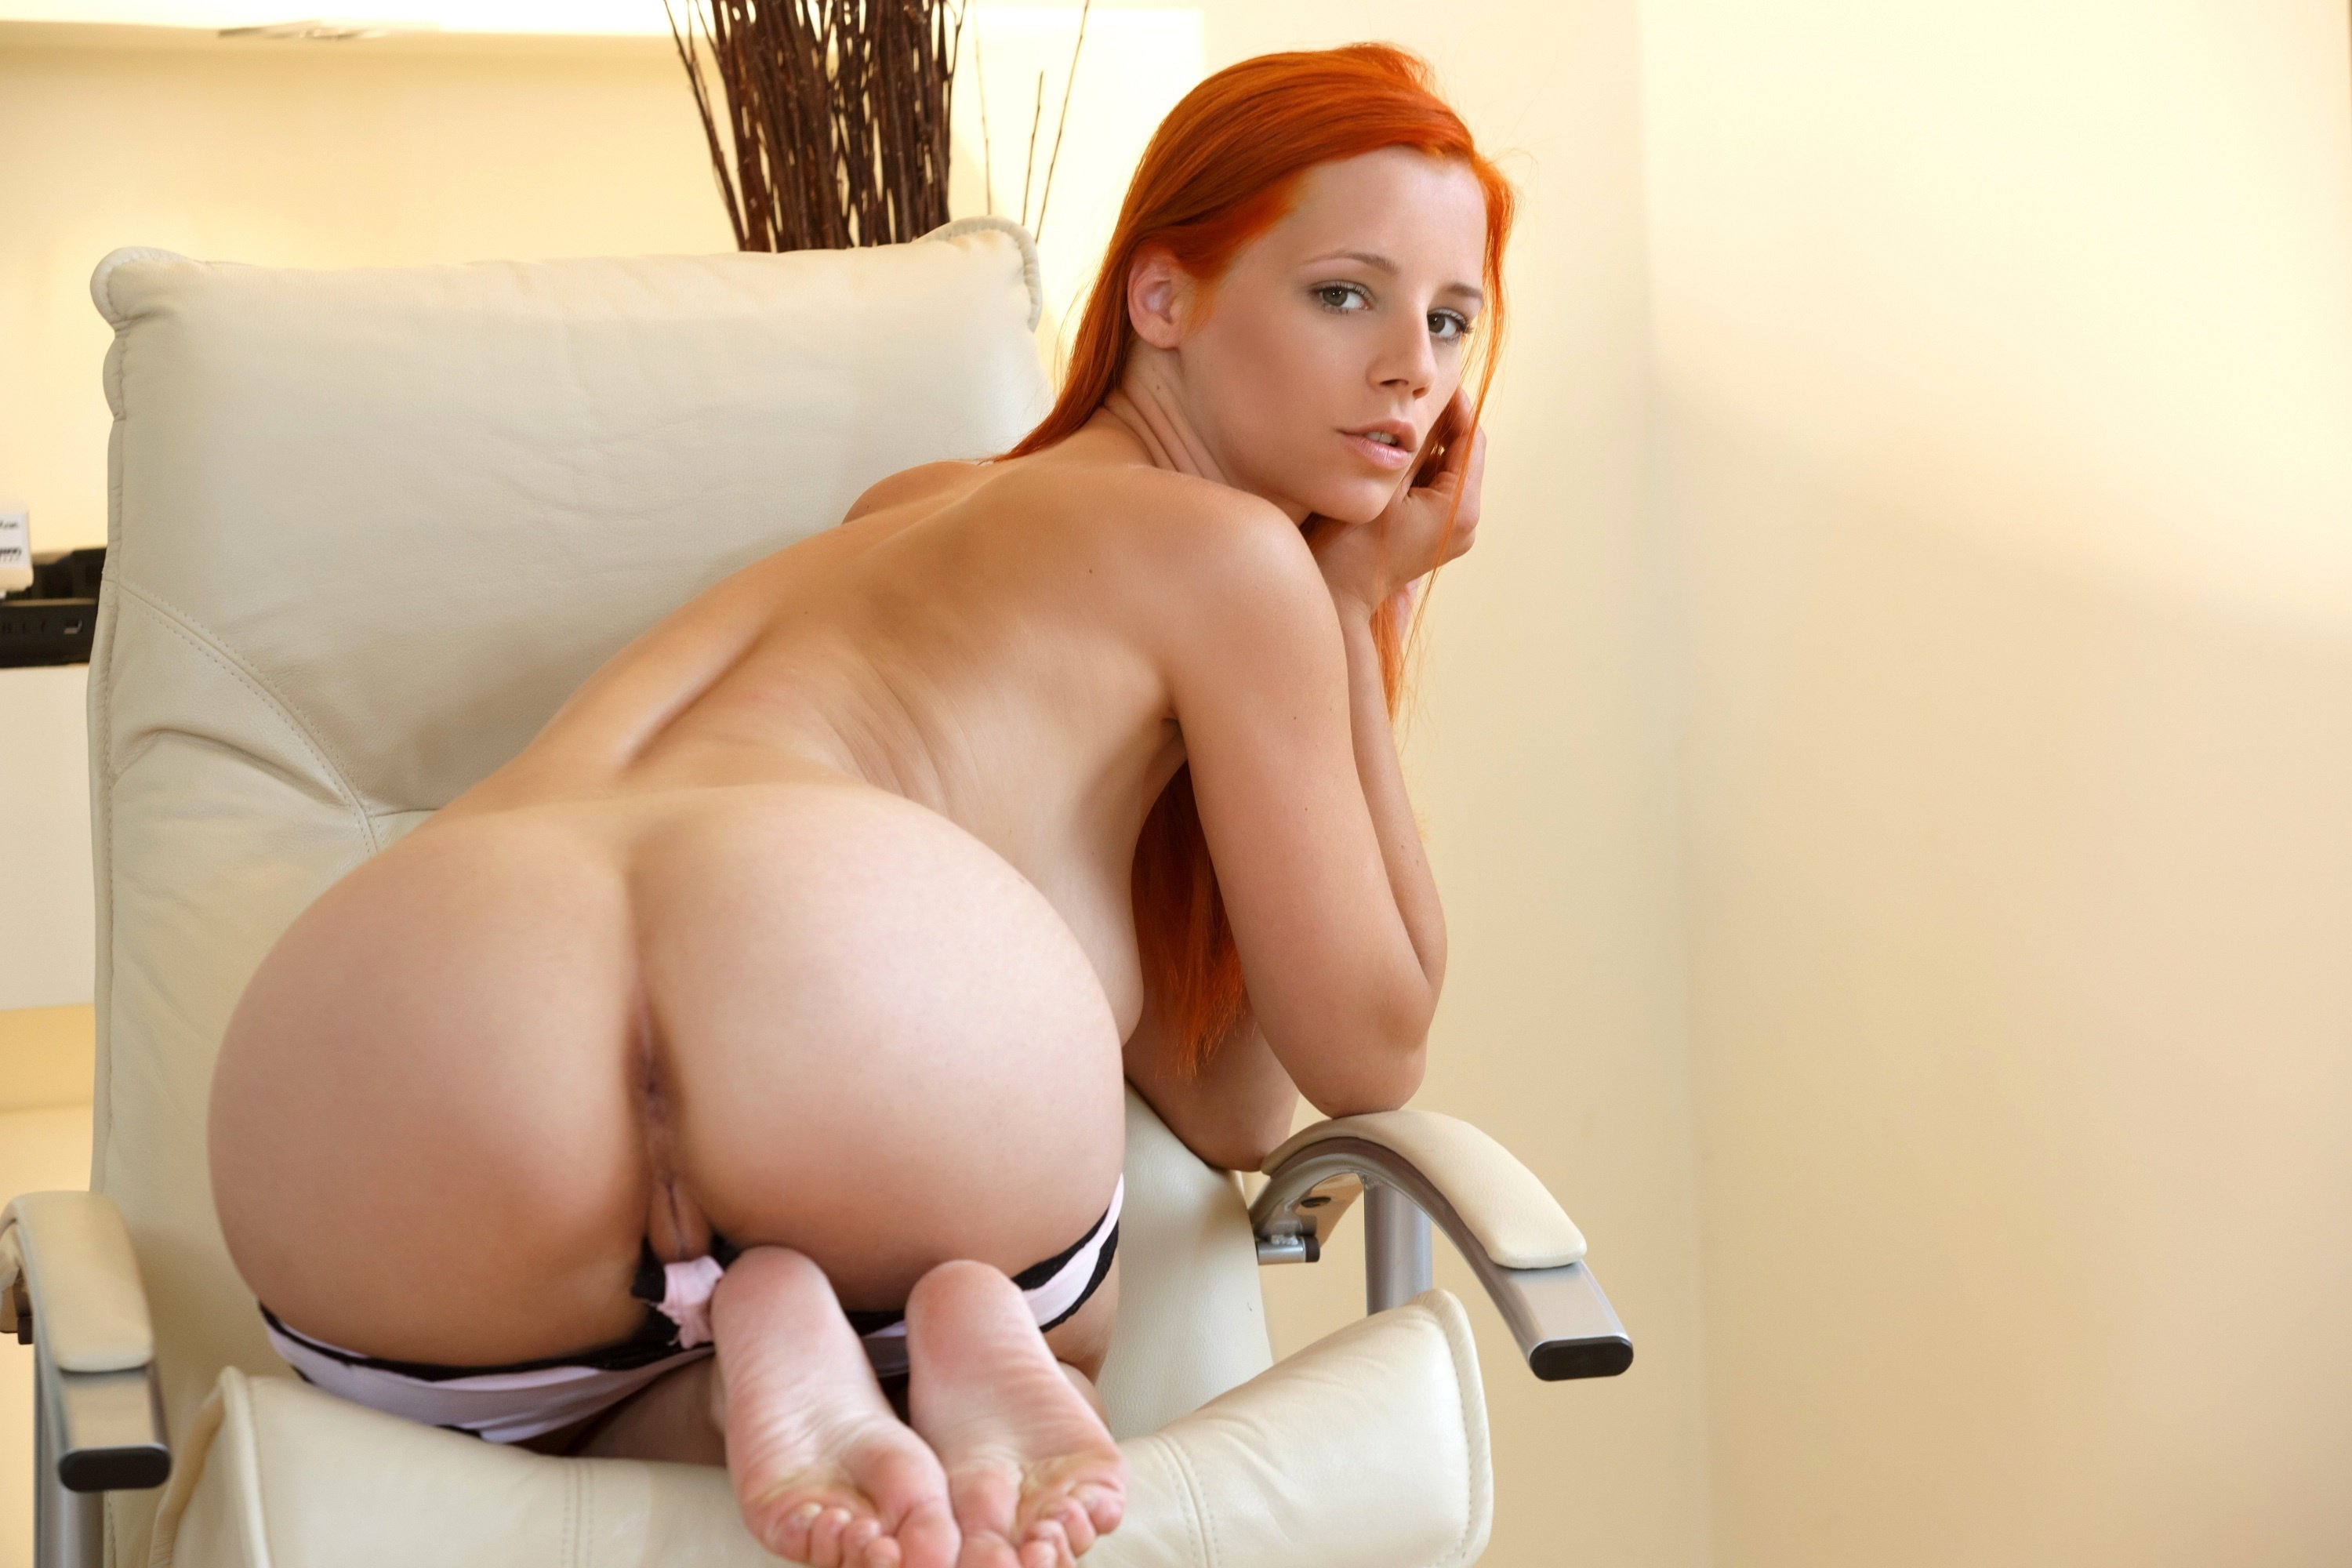 Young Redhead Girls Pics, Naked Teens Porn Galleries